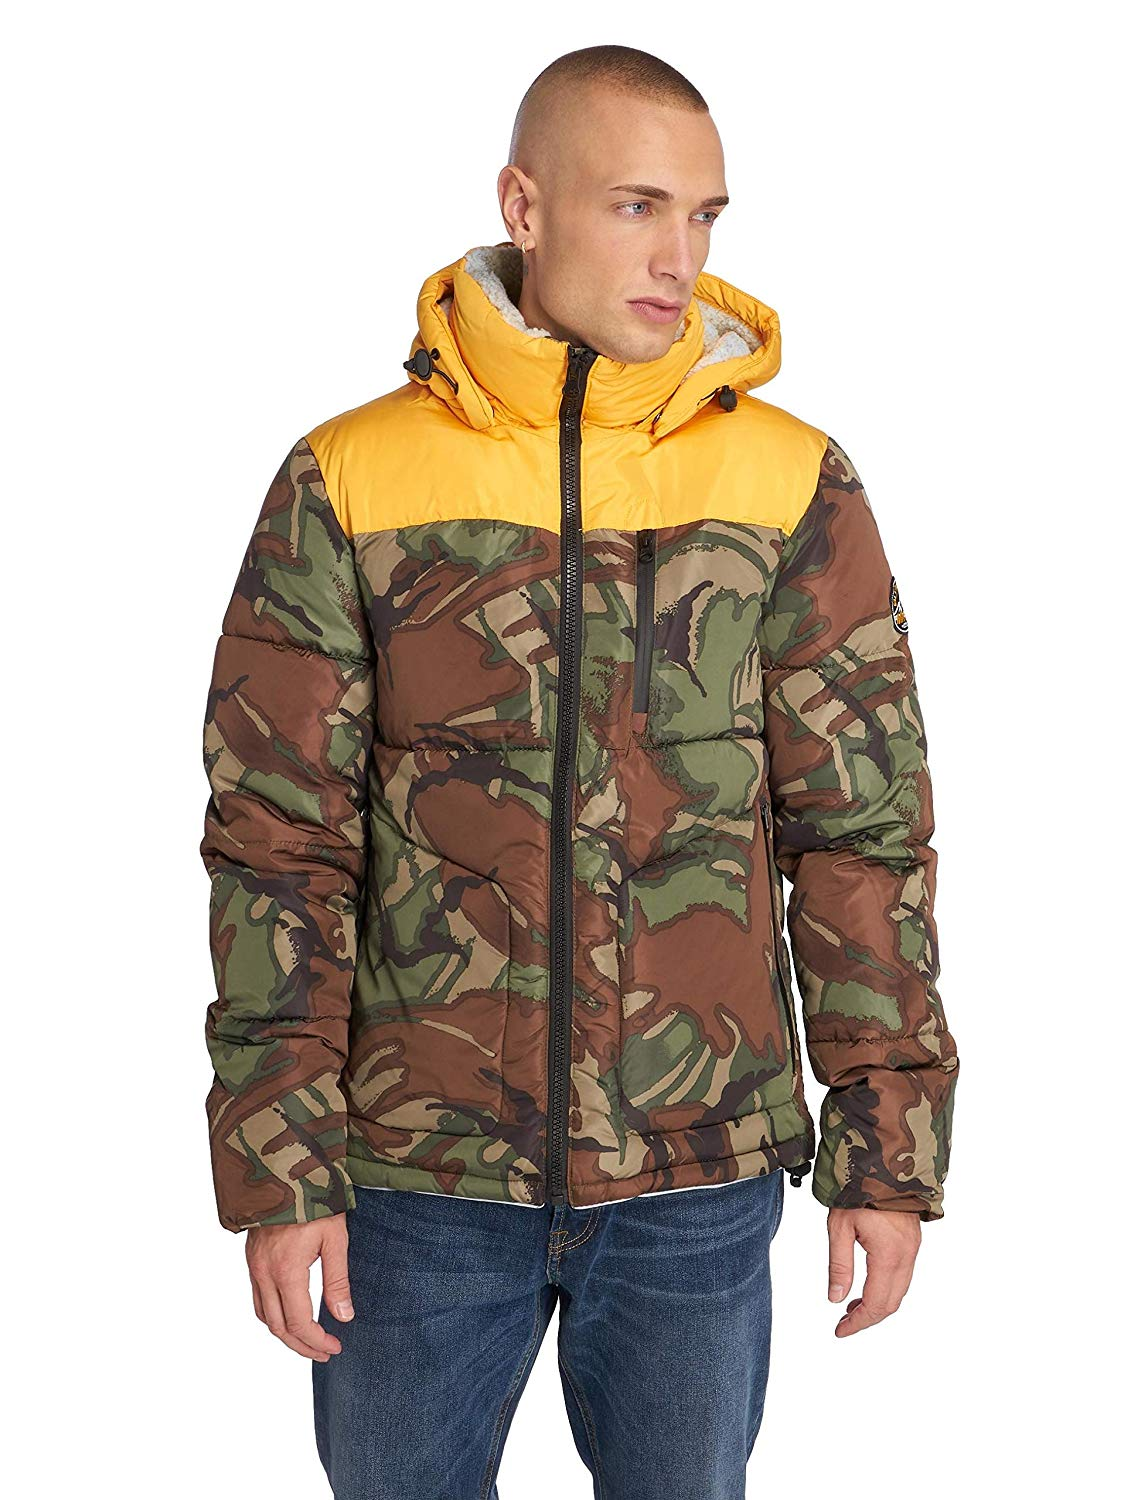 512e001809cb Variation-B07GCNHYCV-of-Superdry-Uomo-GiaccheGiacca-Invernale-Expedition-Coat-B07HF5VZGJ-20029.jpg